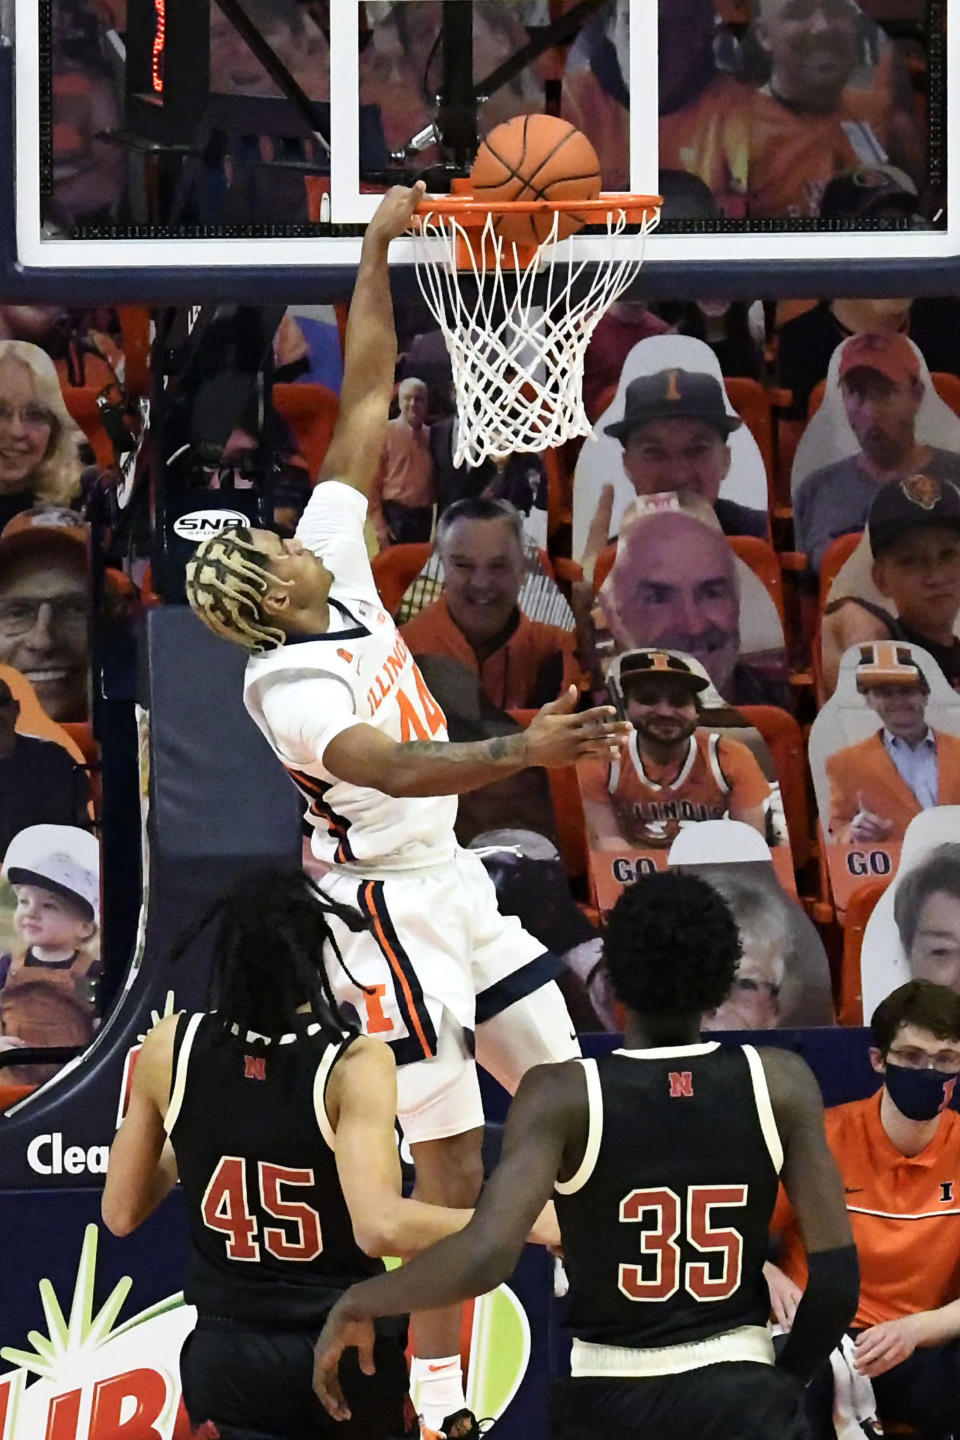 Illinois guard Adam Miller (44) scores as Nebraska guard Dalano Banton (45) and center Eduardo Andre (35) watch during the first half of an NCAA college basketball game Thursday, Feb. 25, 2021, in Champaign, Ill. (AP Photo/Holly Hart)